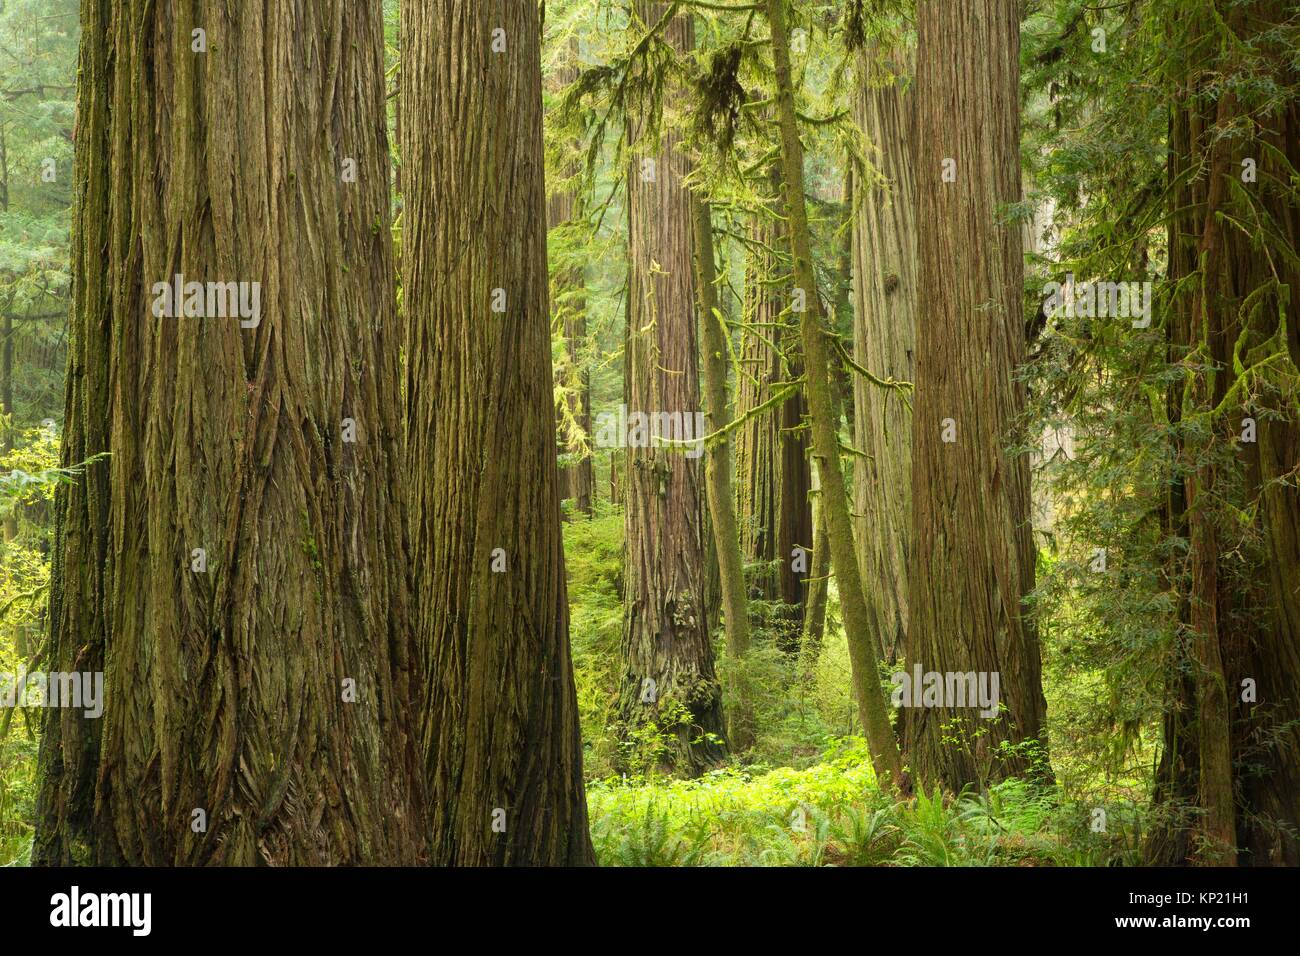 Coast redwood (Sequoia sempervirens) forest, Jedediah Smith Redwoods State Park, Redwood National Park, California. - Stock Image